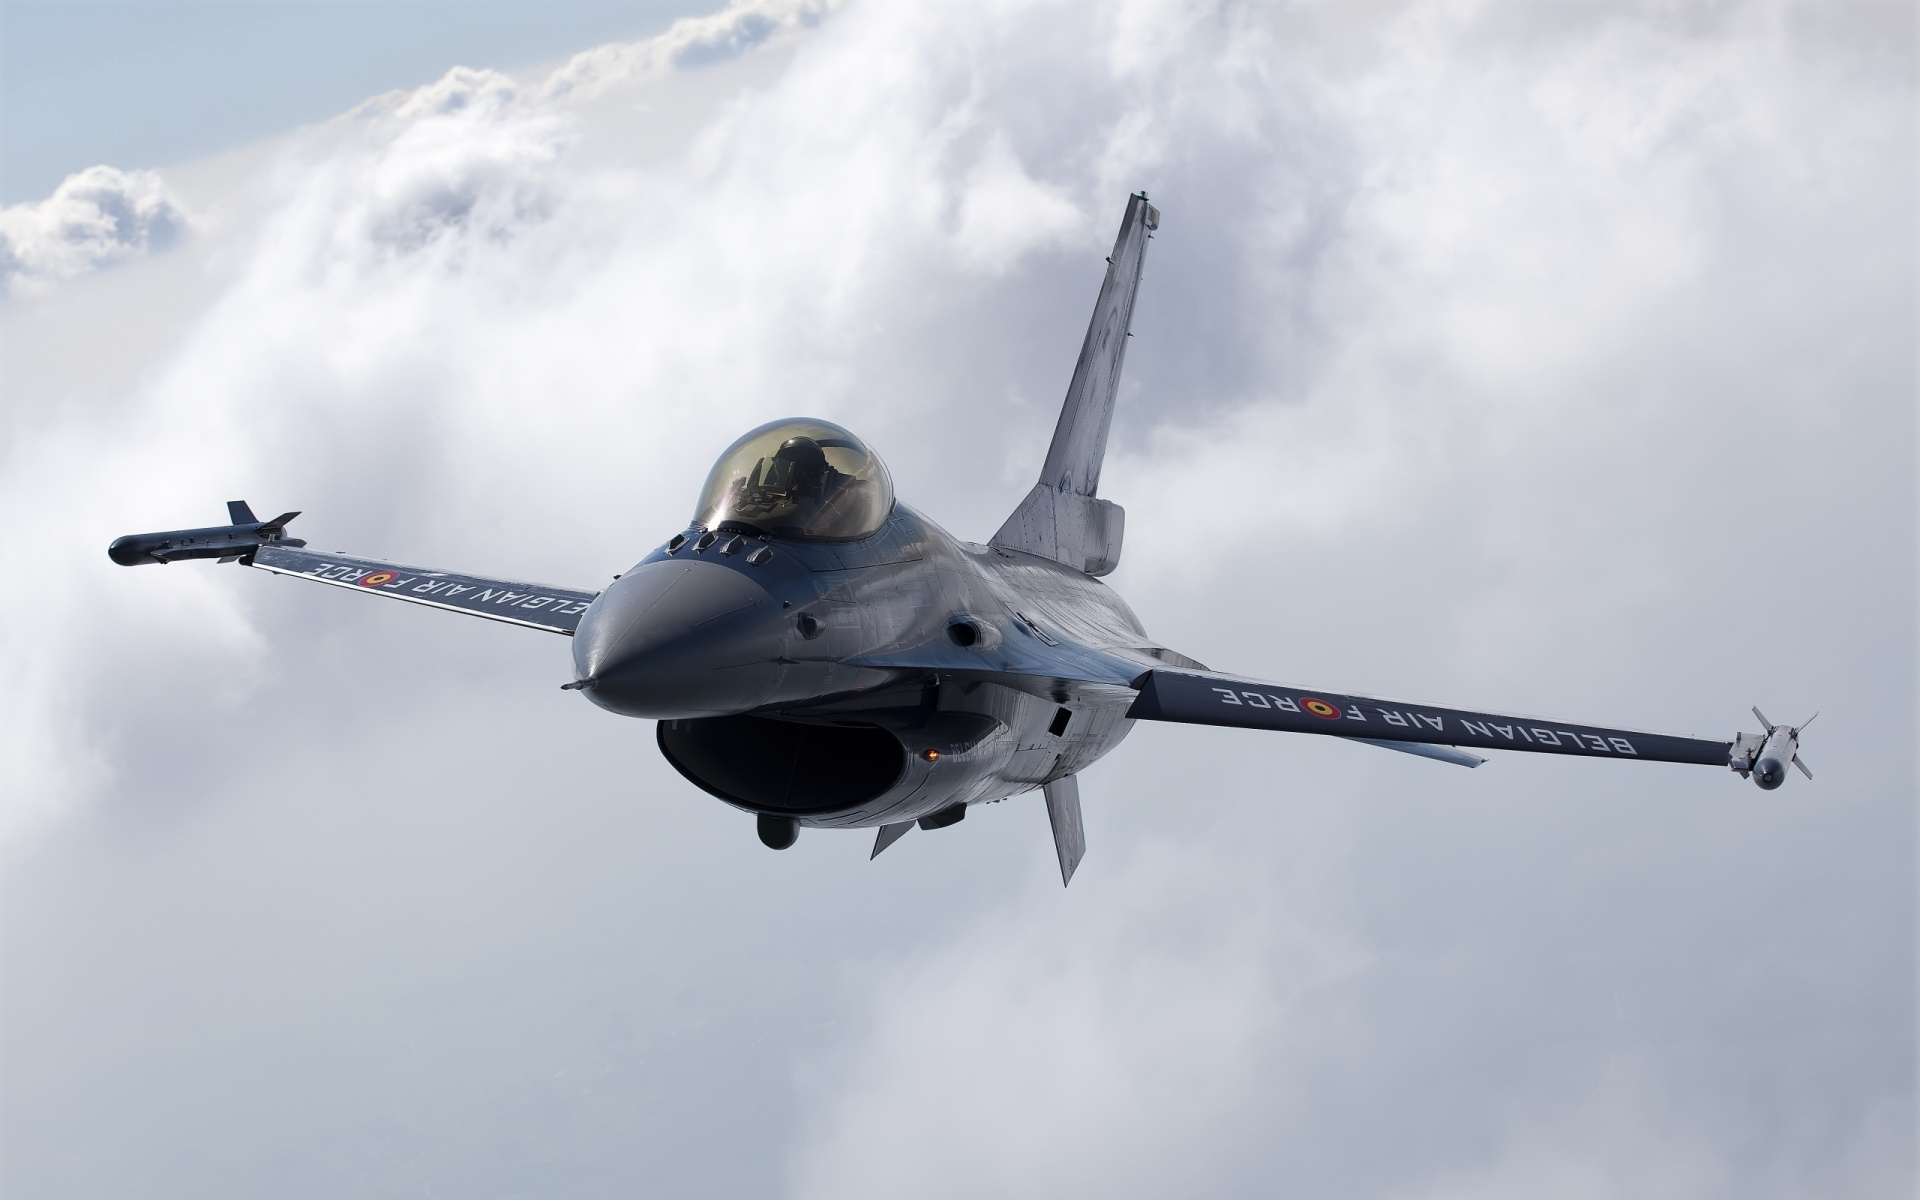 Belgian F16 Wallpaper in 1920x1200 Widescreen